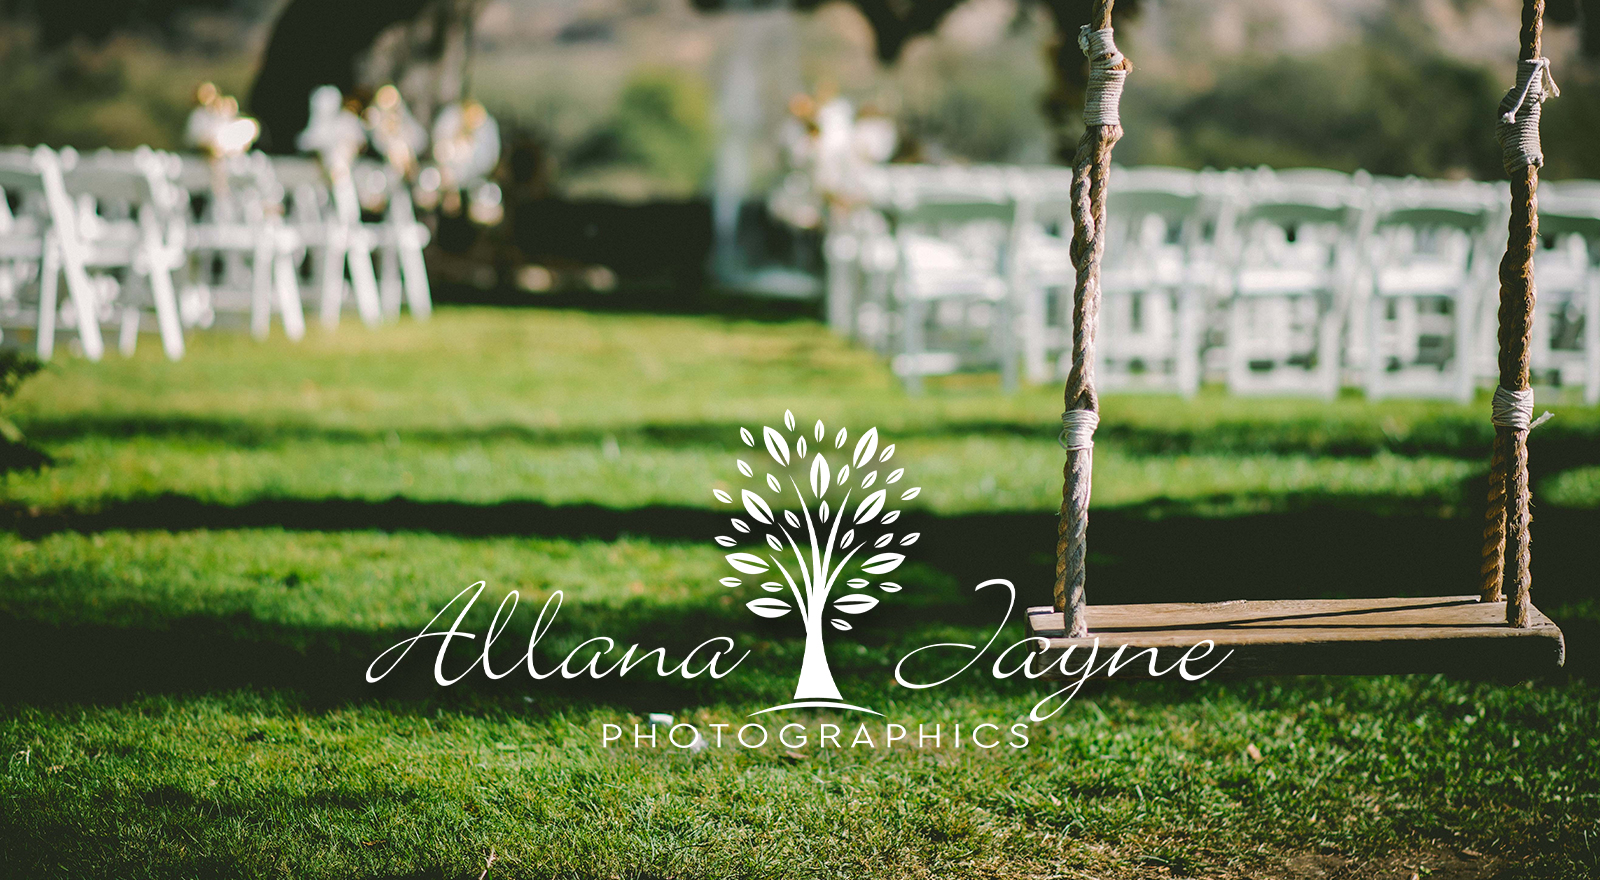 Allana Jayne Photographics logo design